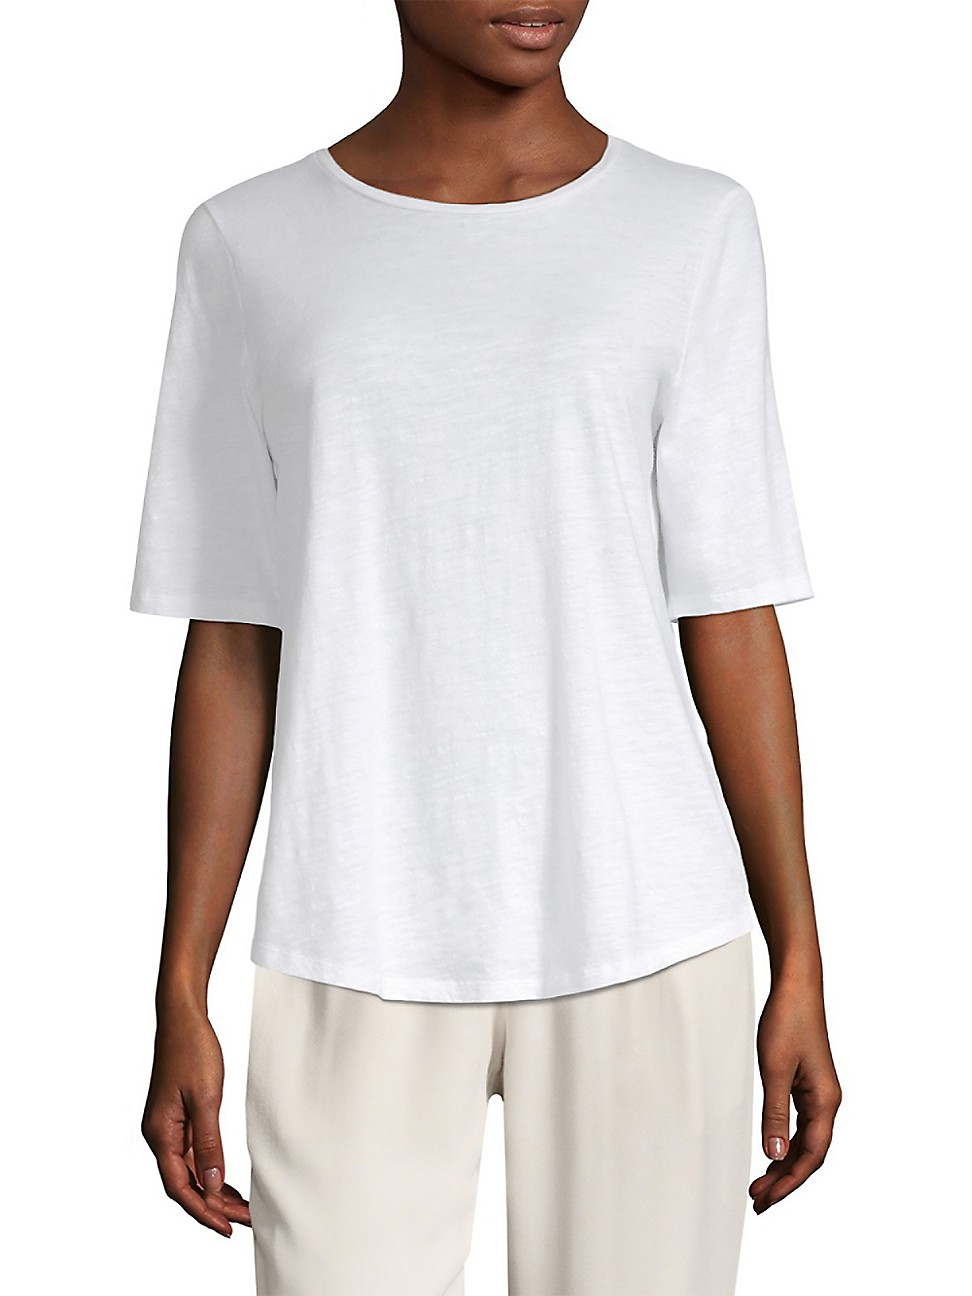 EILEEN FISHER WOMEN'S ORGANIC COTTON SLUB ELBOW-SLEEVE TOP